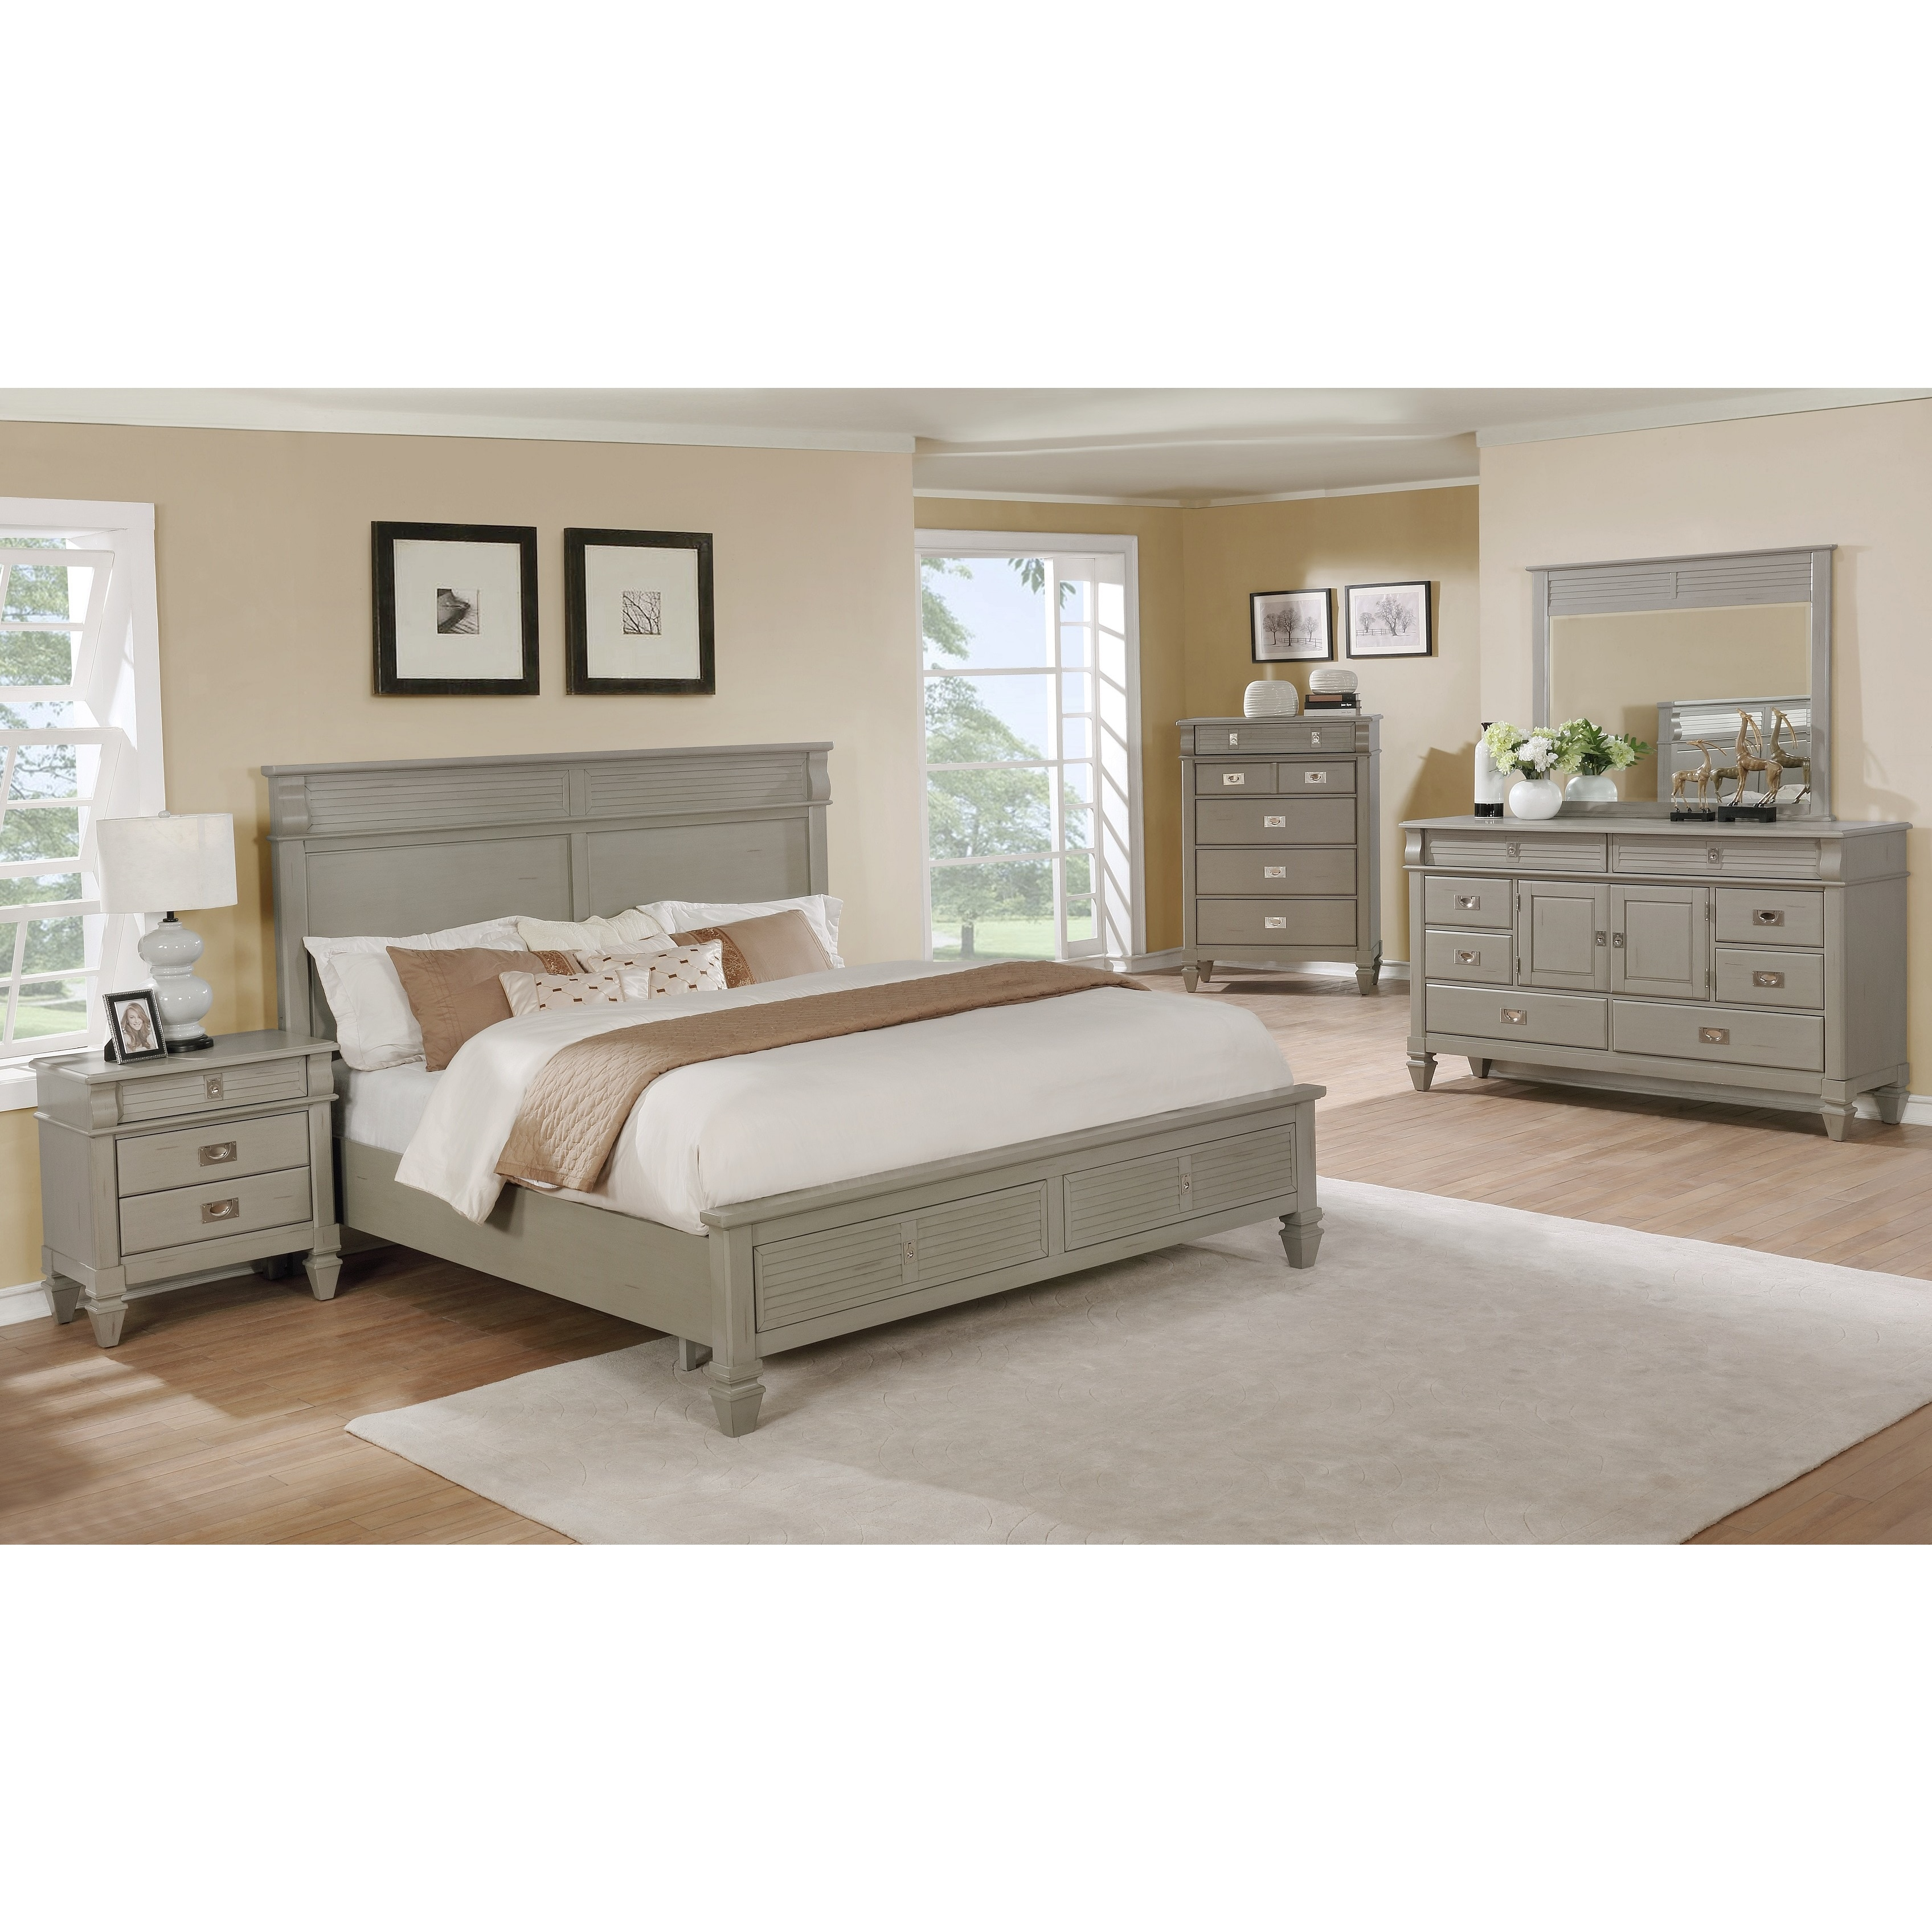 Roundhill Furniture York 10 Solid Wood Construction Bedroom Set with King  Size Bed, Dresser, Mirror, Chest and Night Stand